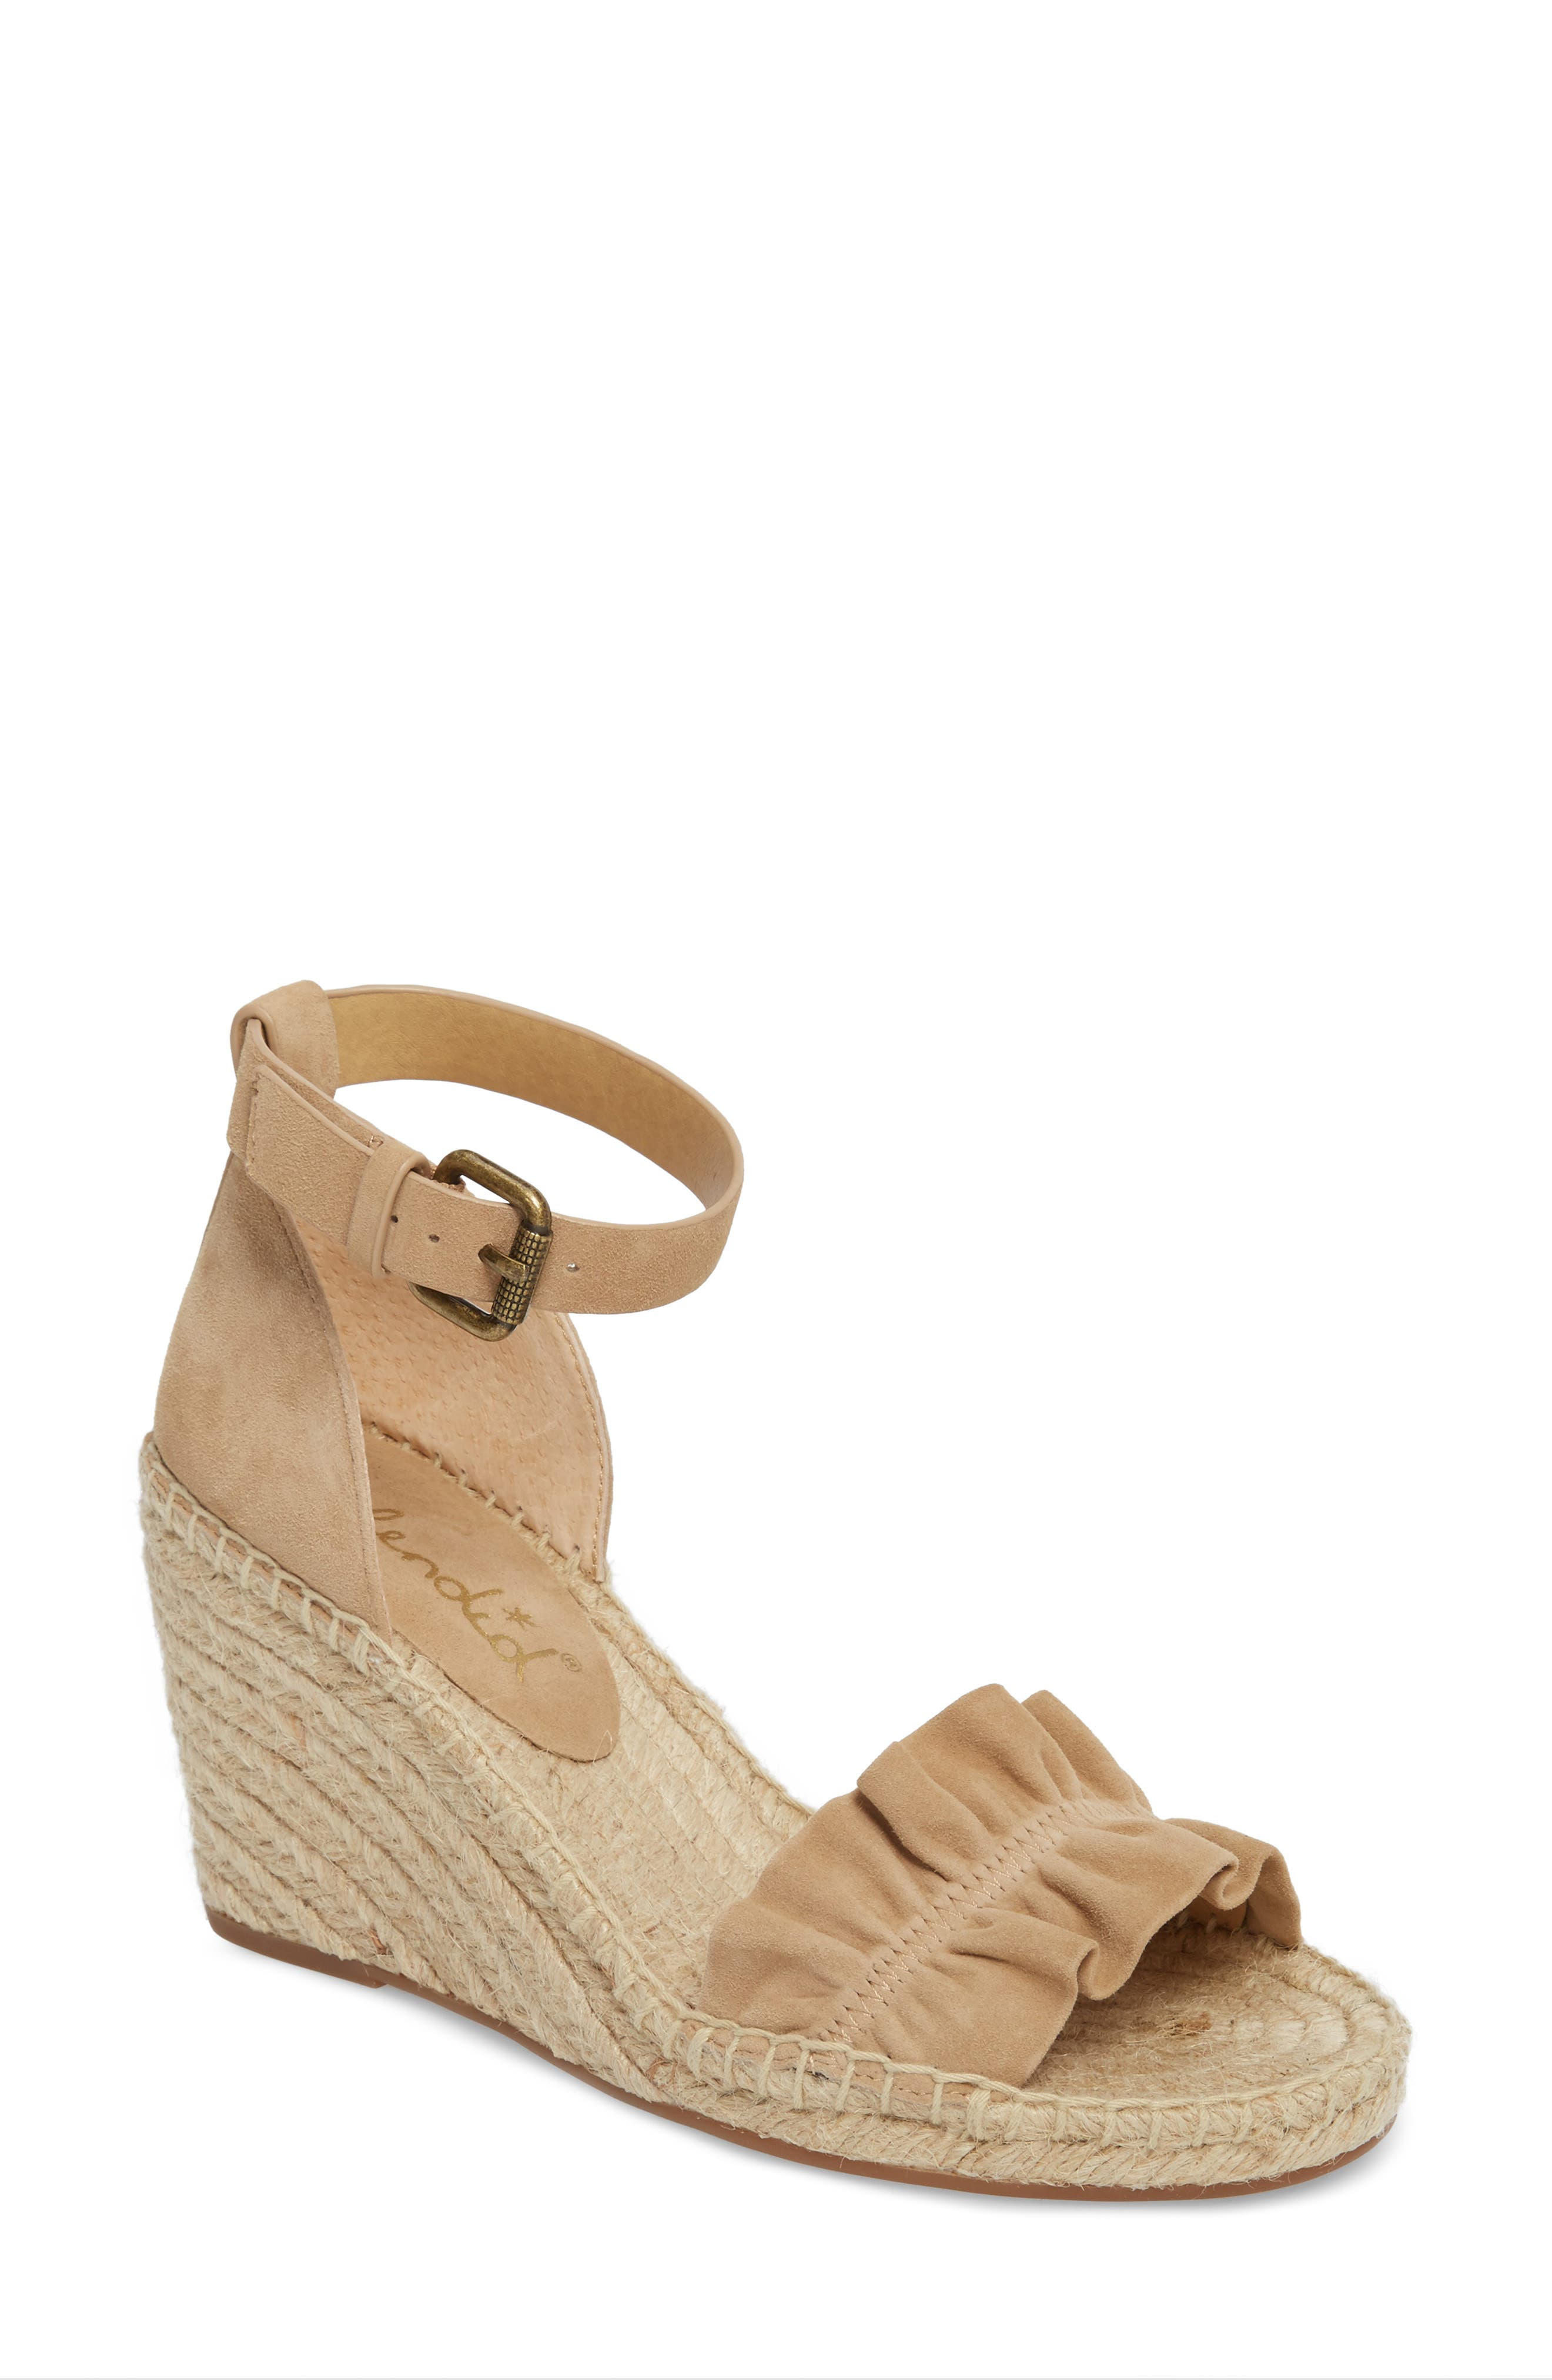 Bedford Espadrille Wedge Sandal,                             Main thumbnail 1, color,                             021